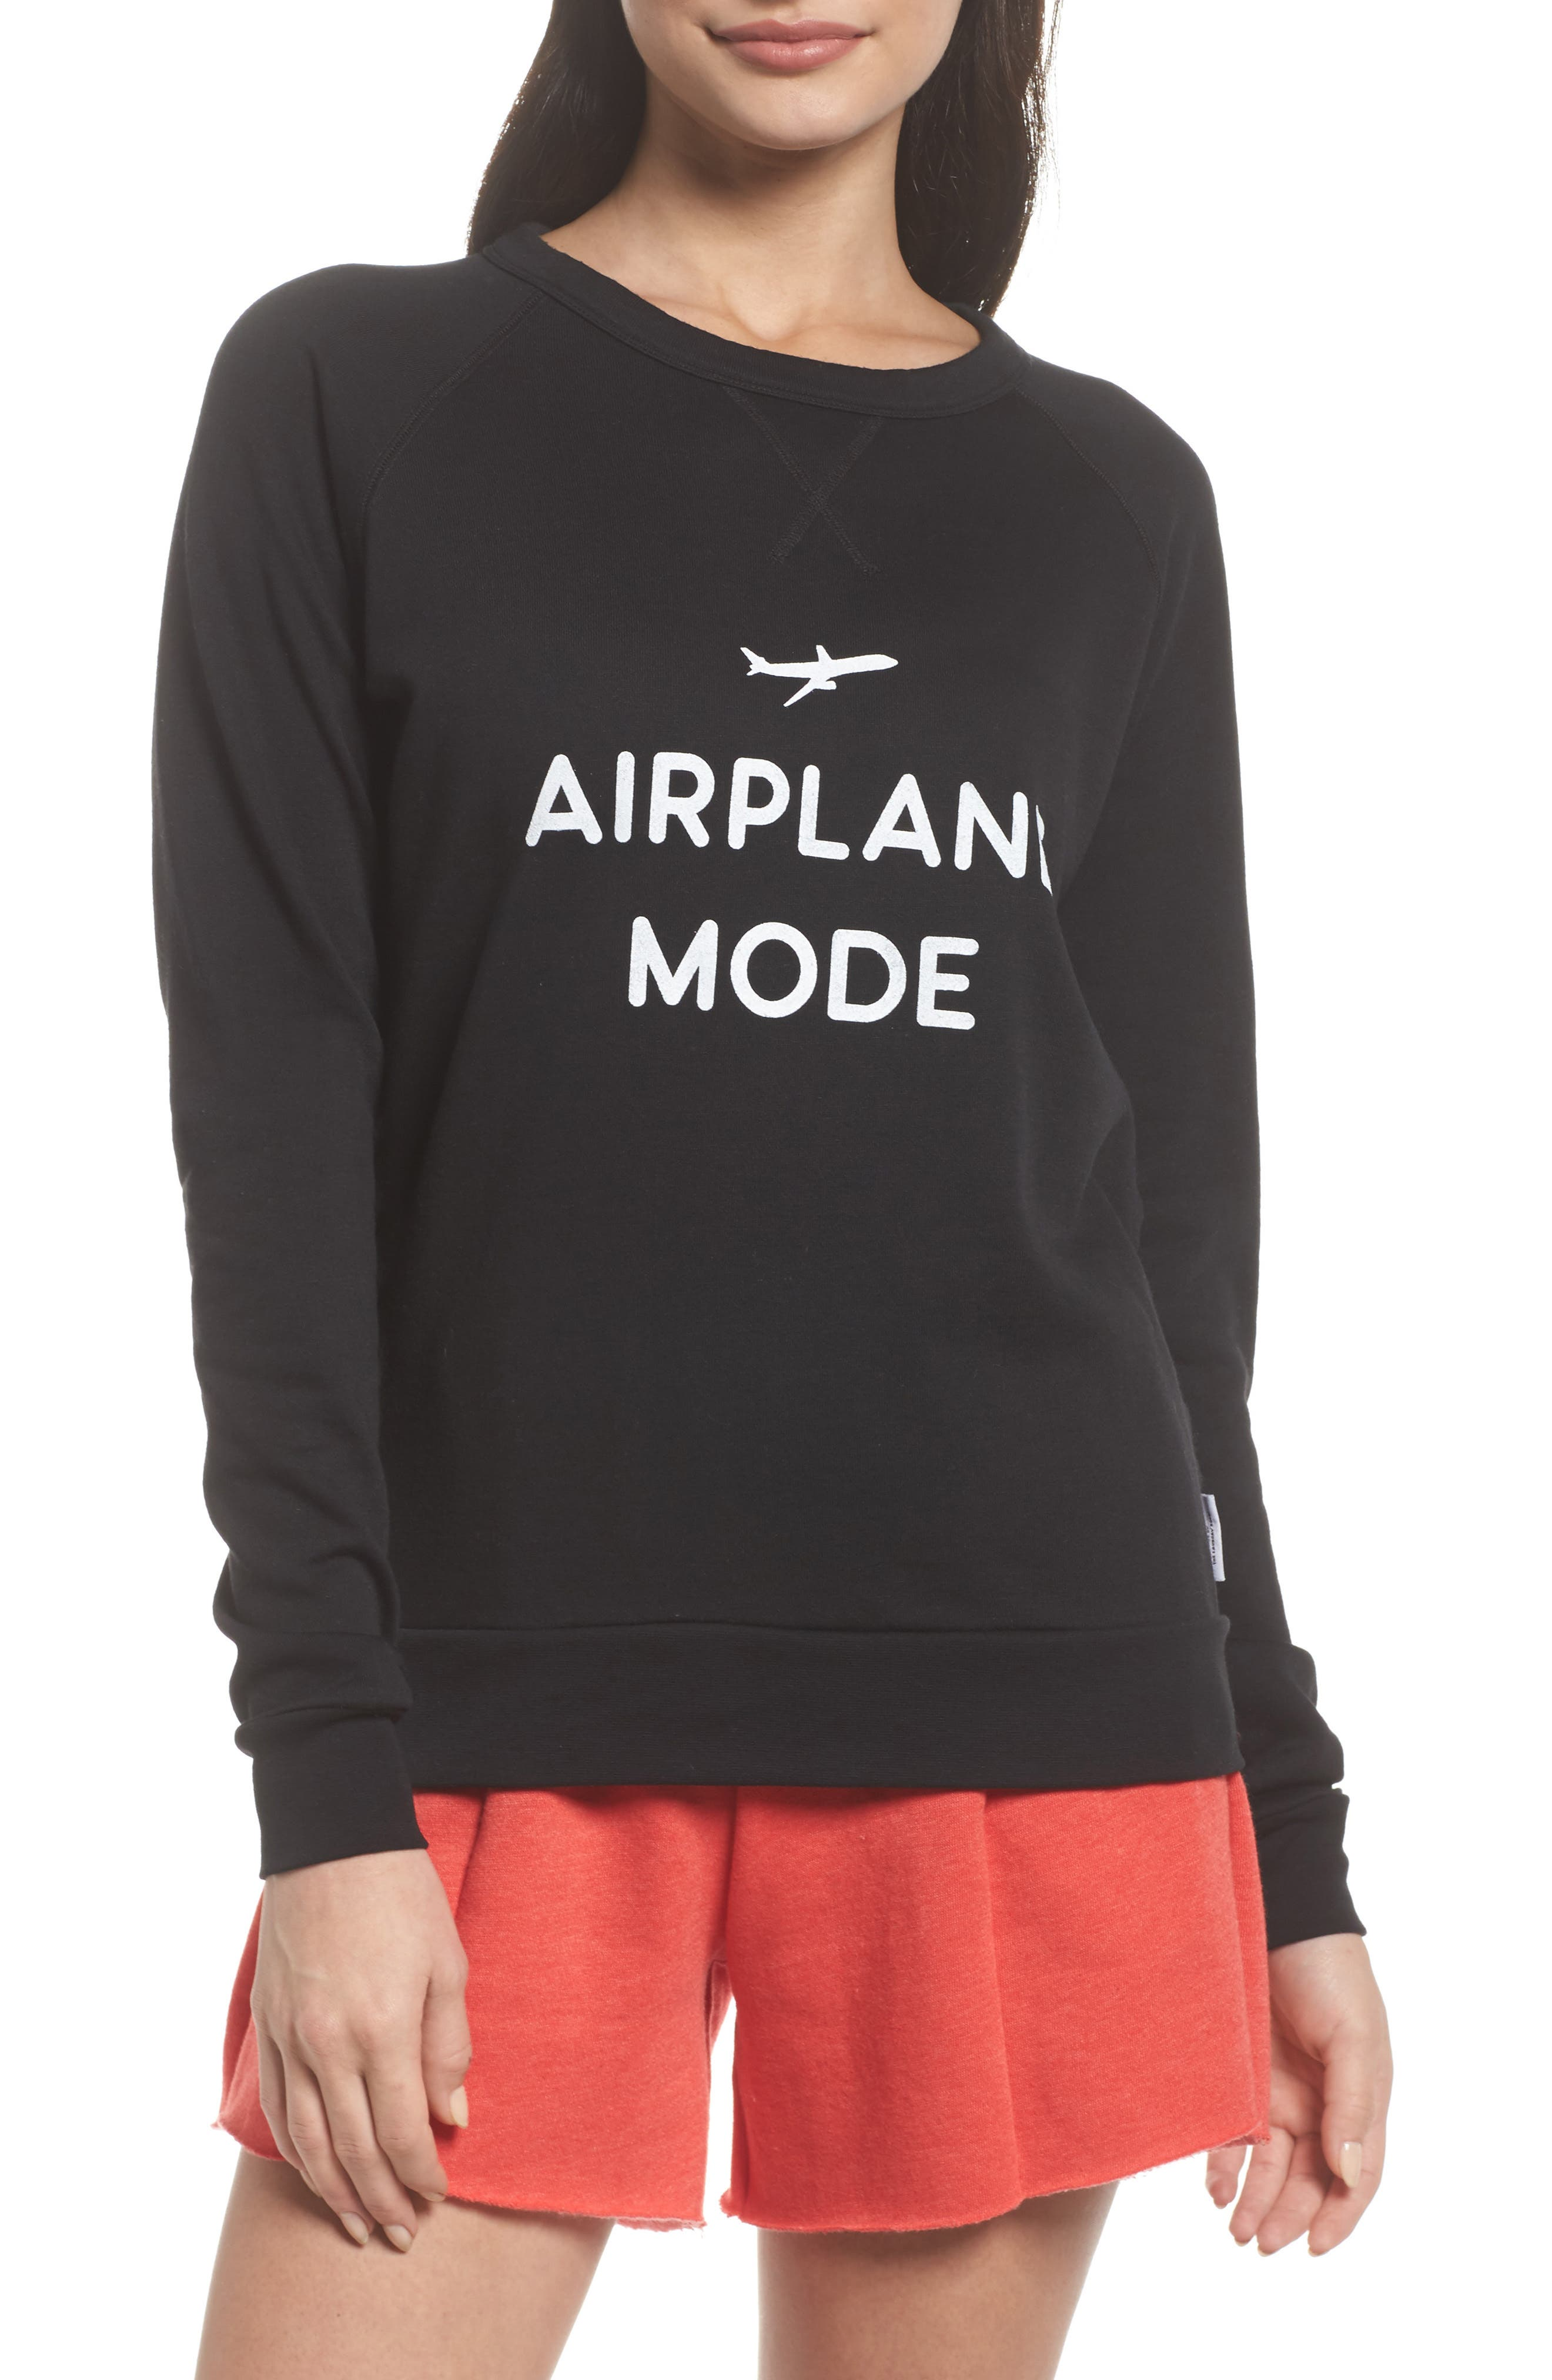 THE LAUNDRY ROOM,                             Airplane Mode Cozy Lounge Sweatshirt,                             Main thumbnail 1, color,                             001